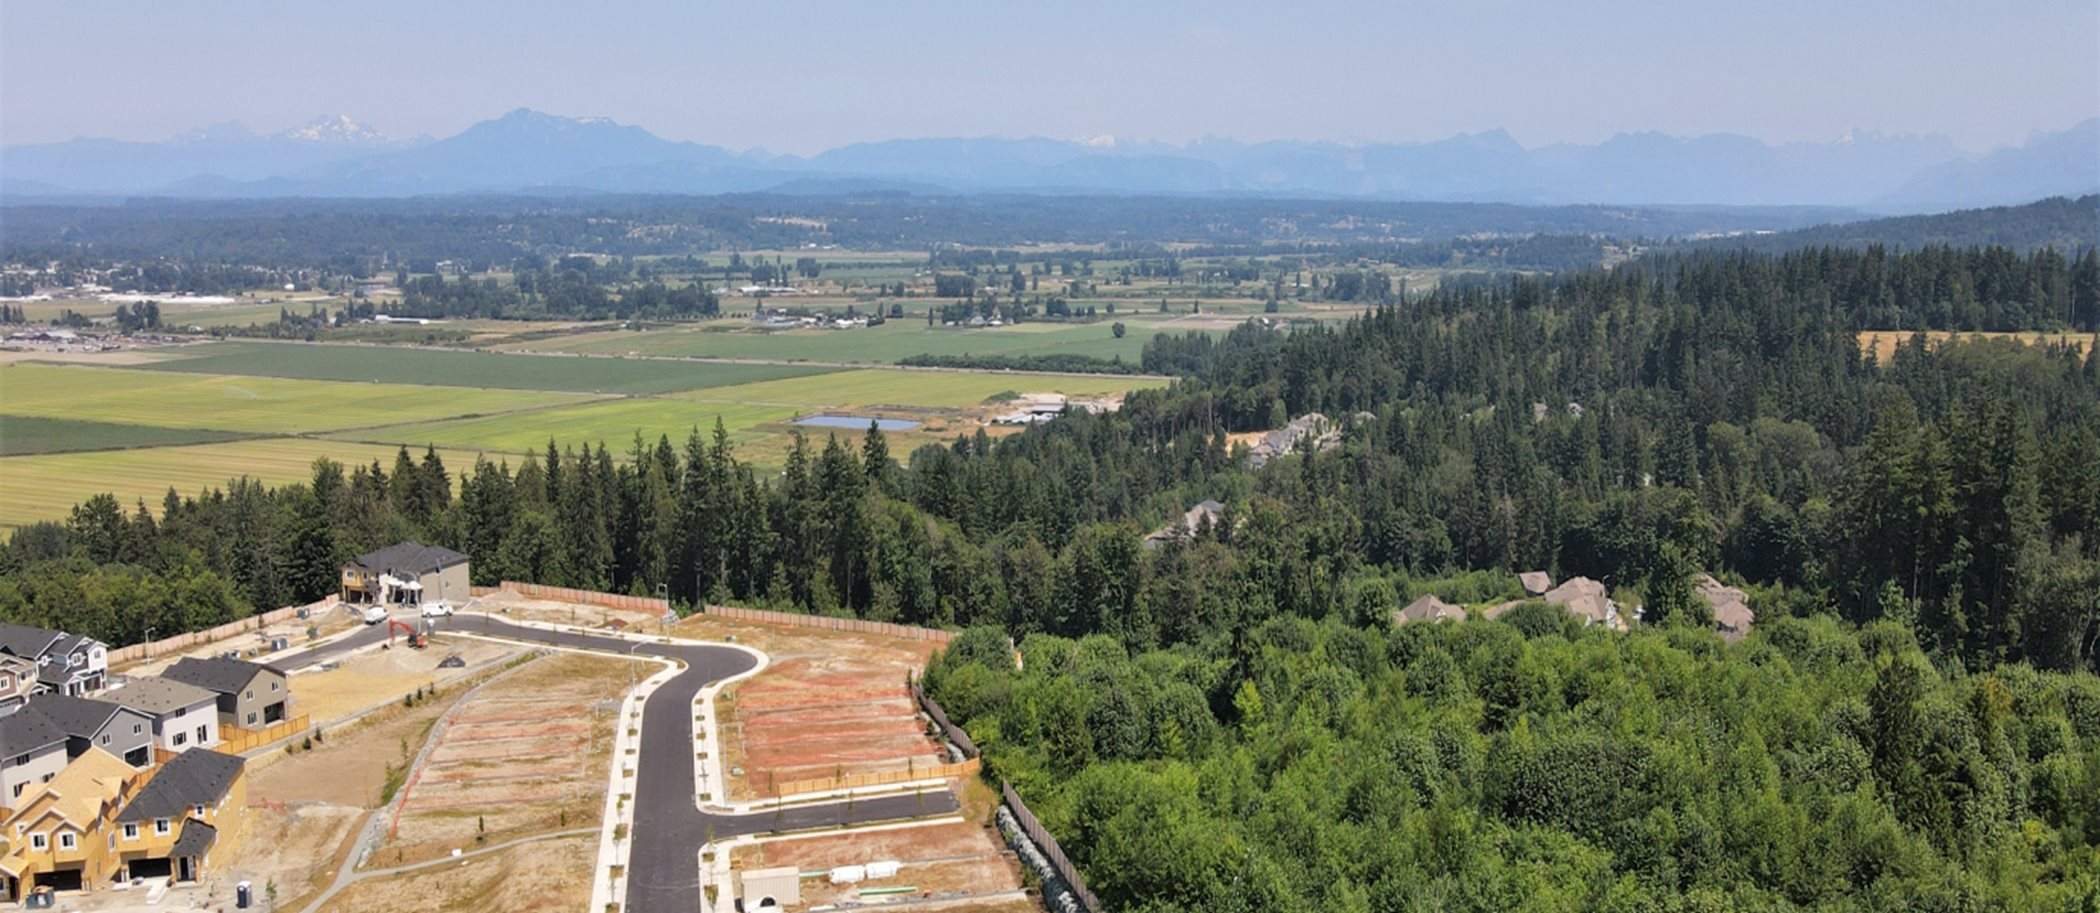 An aerial view of the community, which is surrounded by pine trees and features a mountainscape in the background